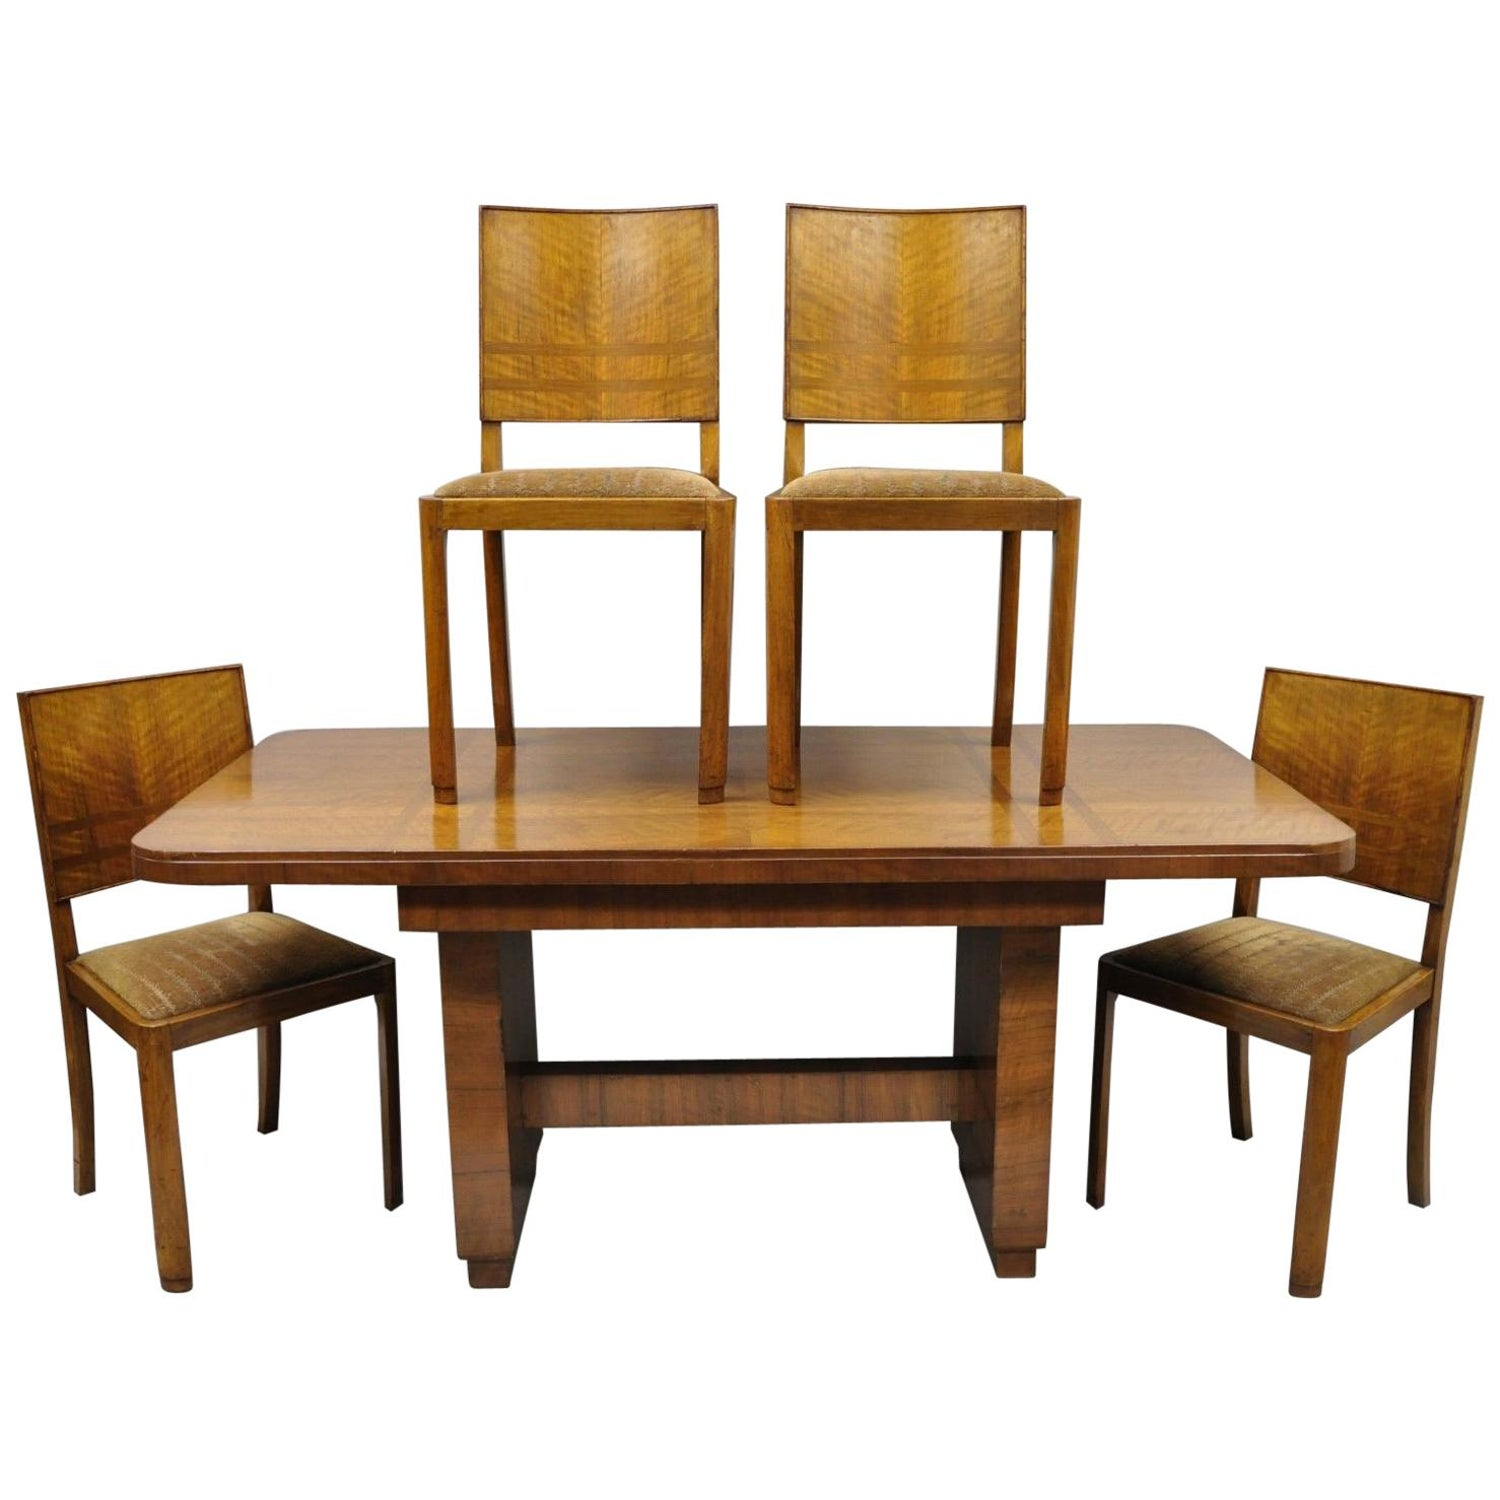 e7c39183947 French Art Deco Mahogany Inlaid Dining Set, 4 Side Chairs and Dining Table  For Sale at 1stdibs